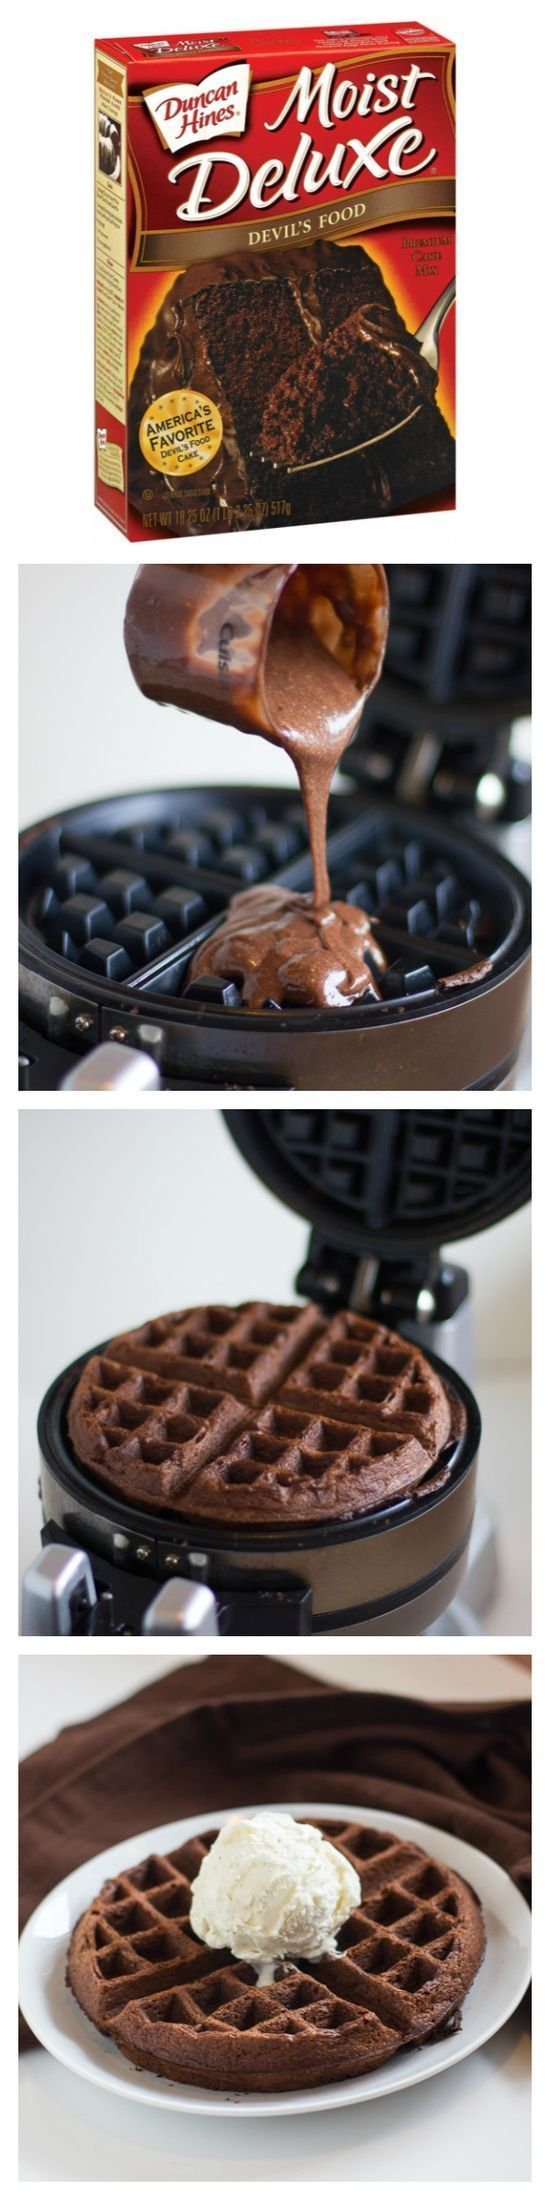 Let's do it! Brownie batter + waffle iron = 5 minute brownies [ AlldredgeWealthStrategies.com ]